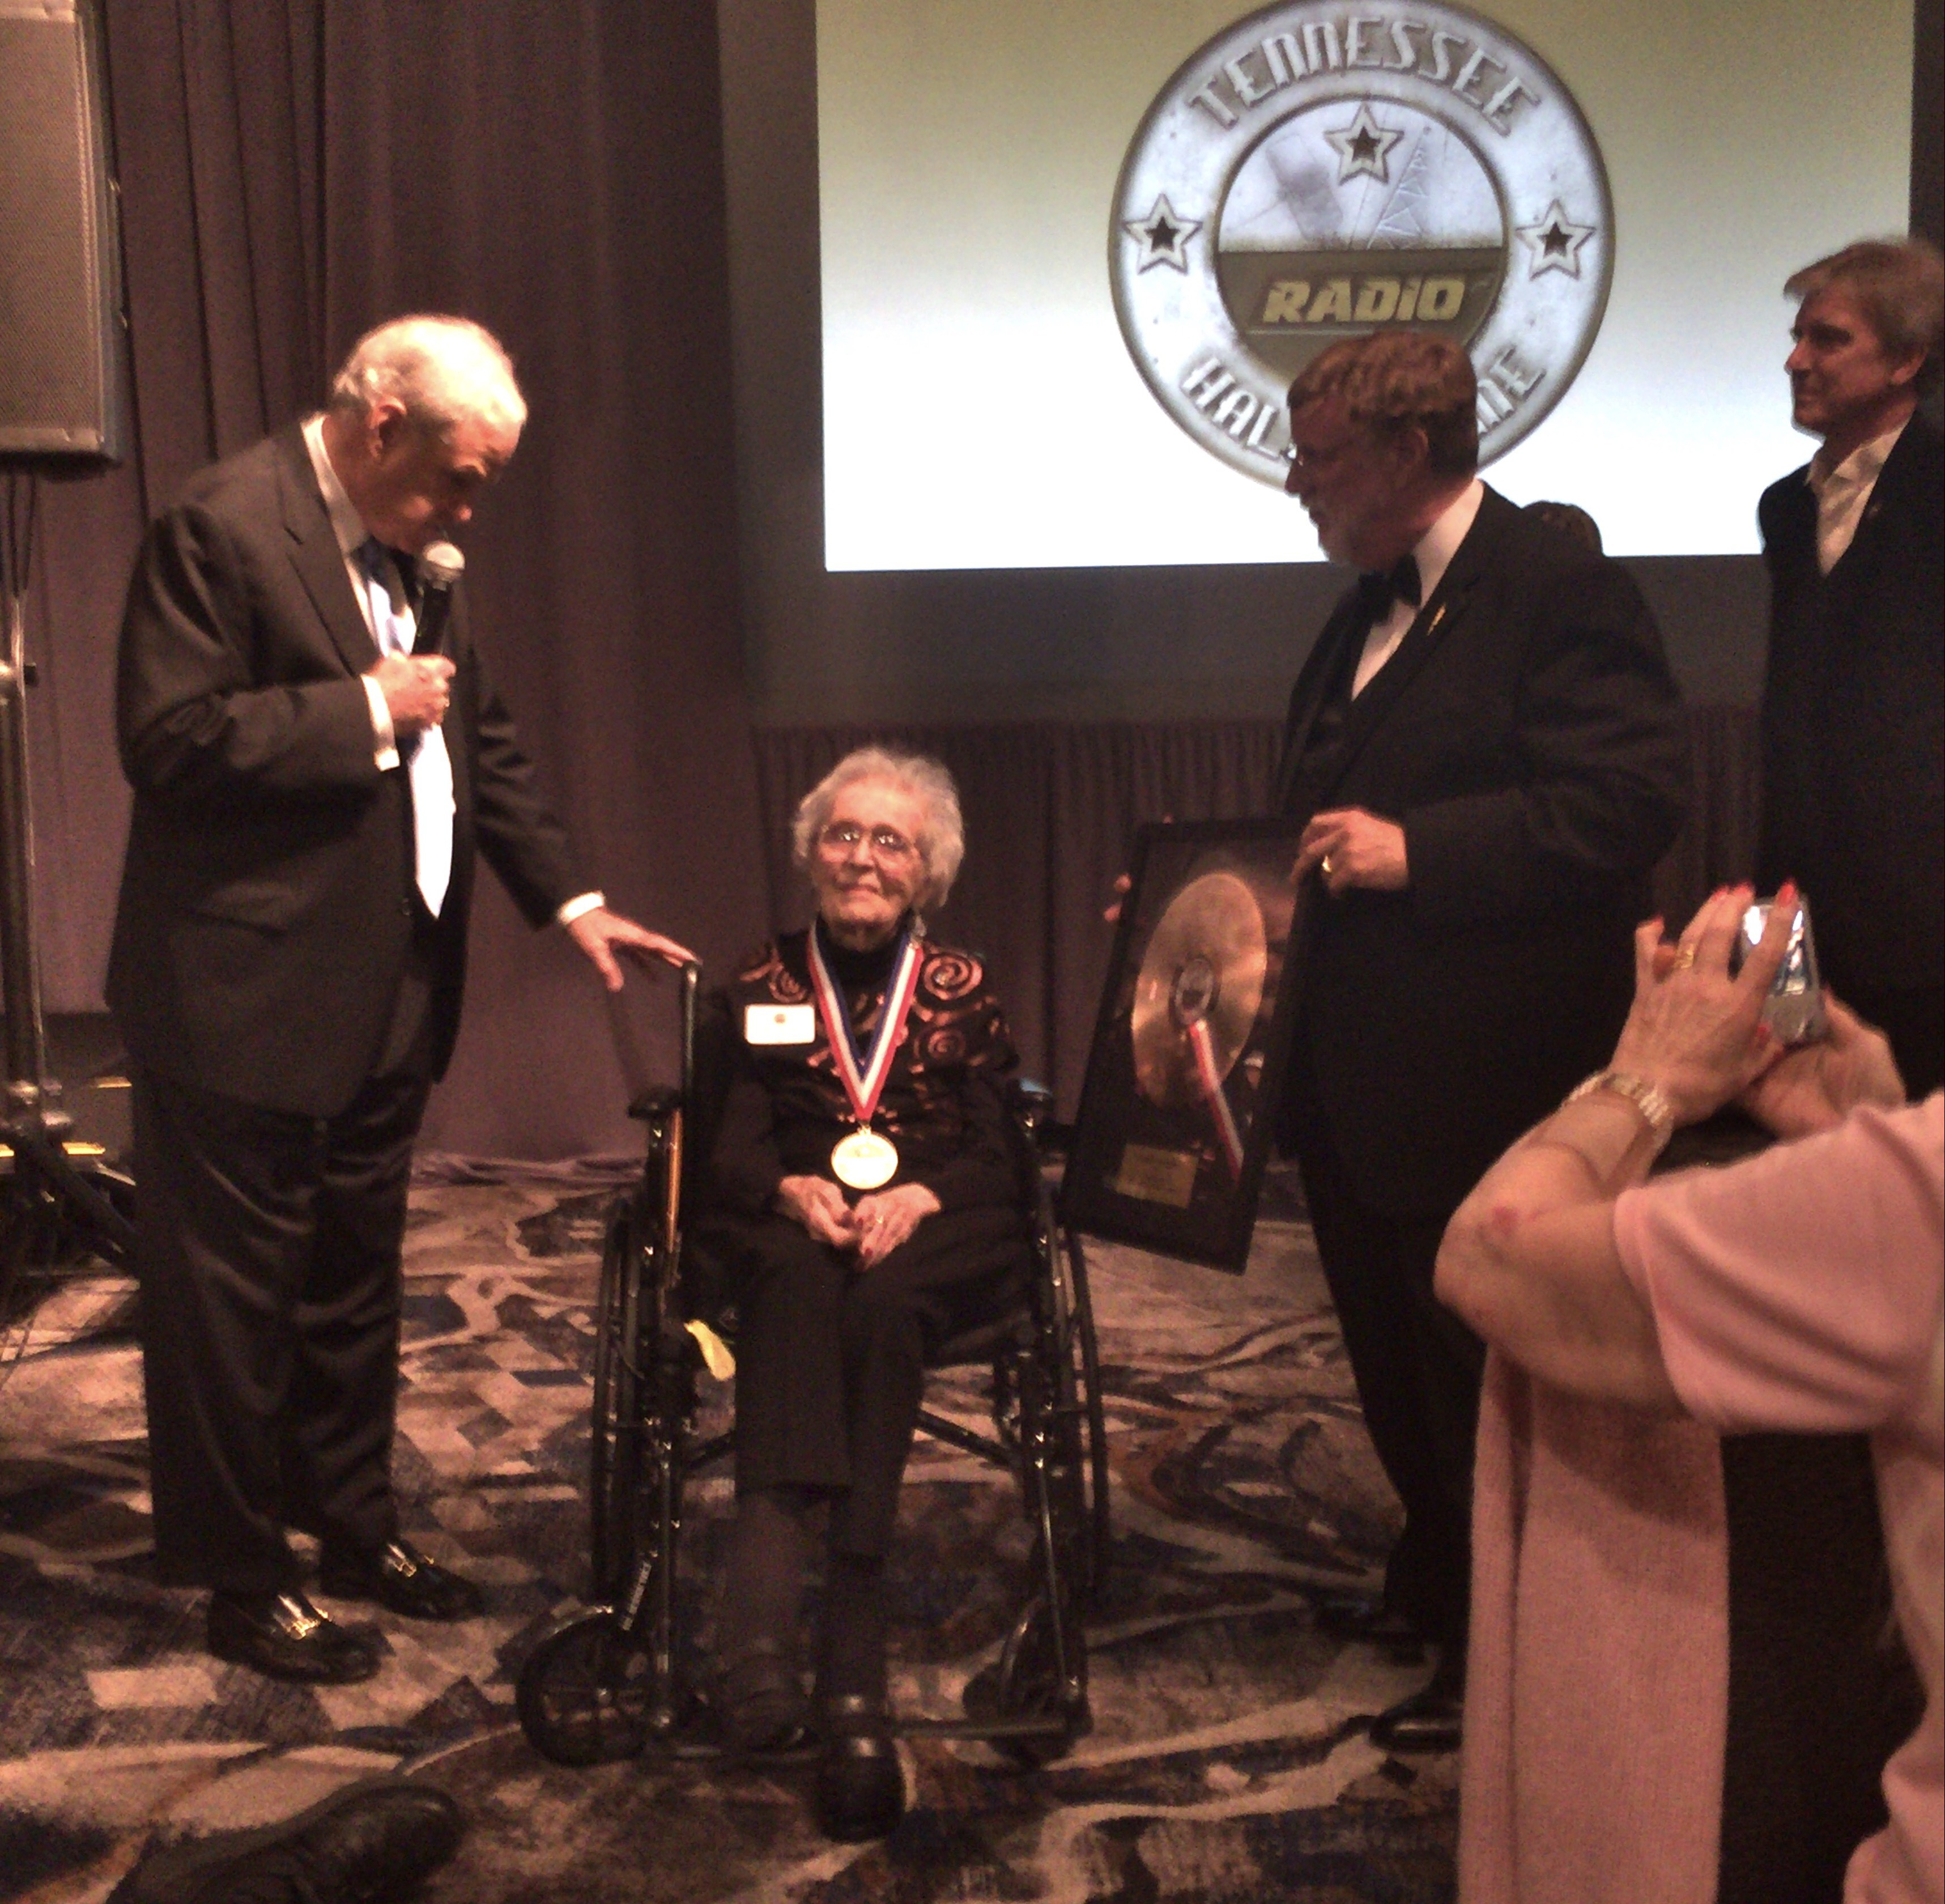 (l-r) Master of Ceremonies John Young with TNRHoF inductee Lin Folk and directors Paul Tinkle and Chip Chapman.